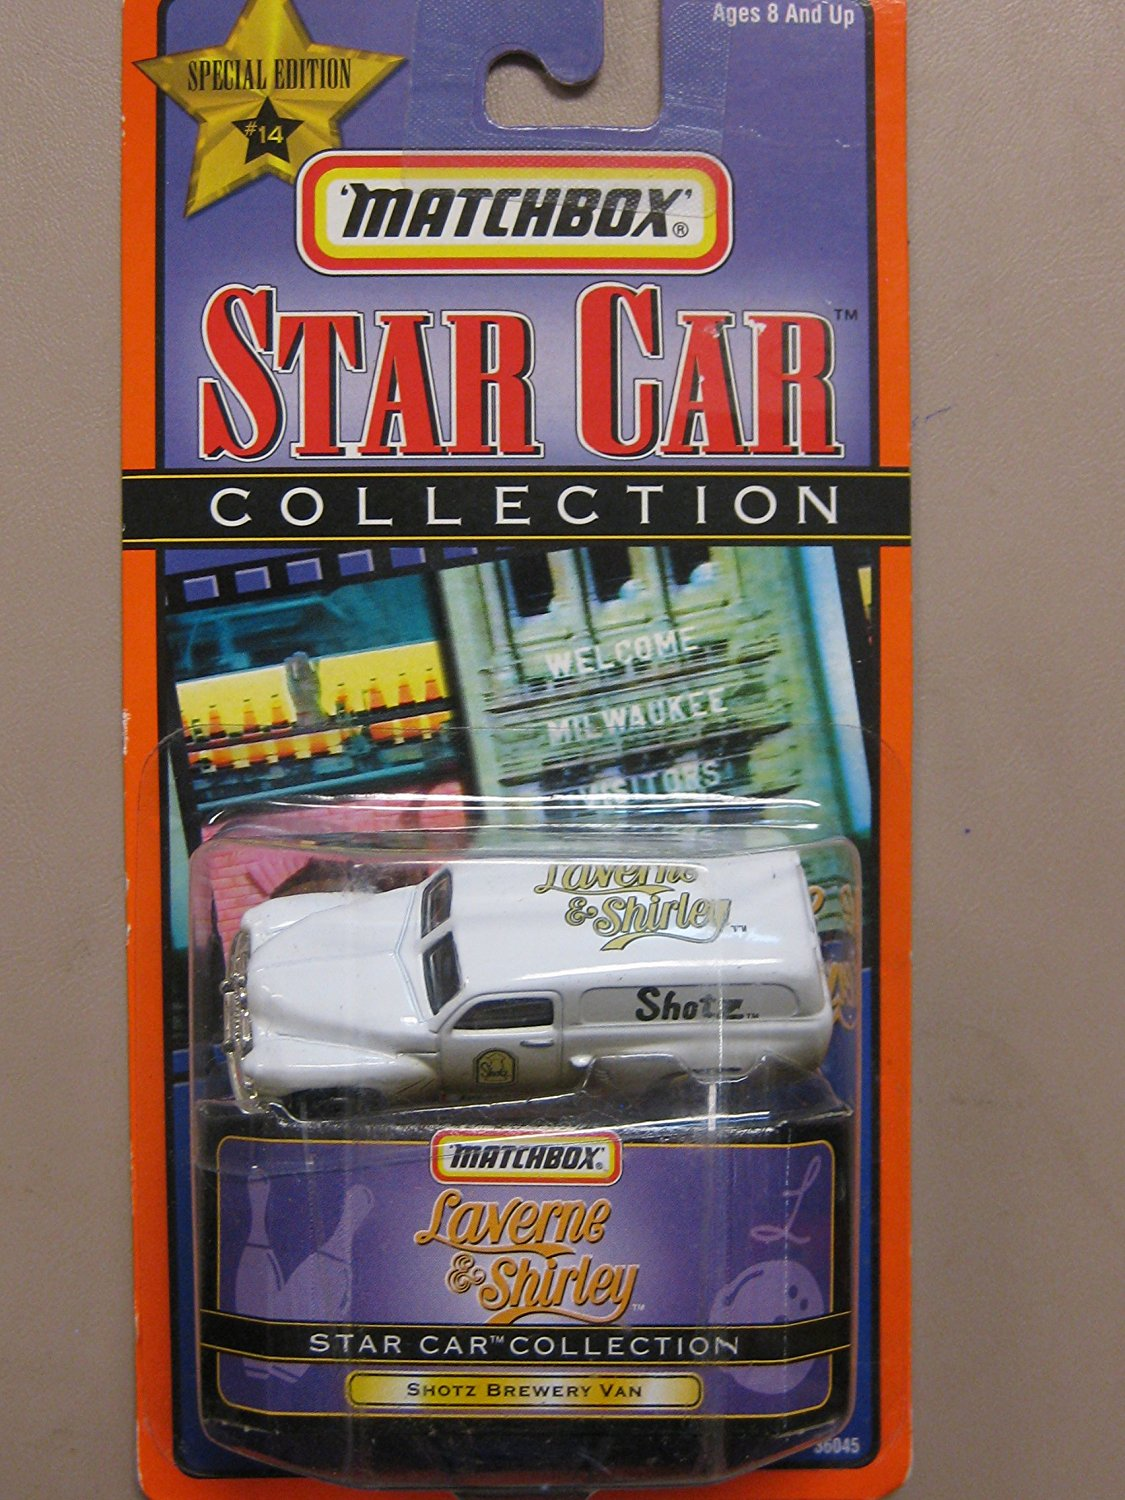 Star Car Laverne & Shirley Shotz Brewery van, 1 64 Scale By Matchbox by